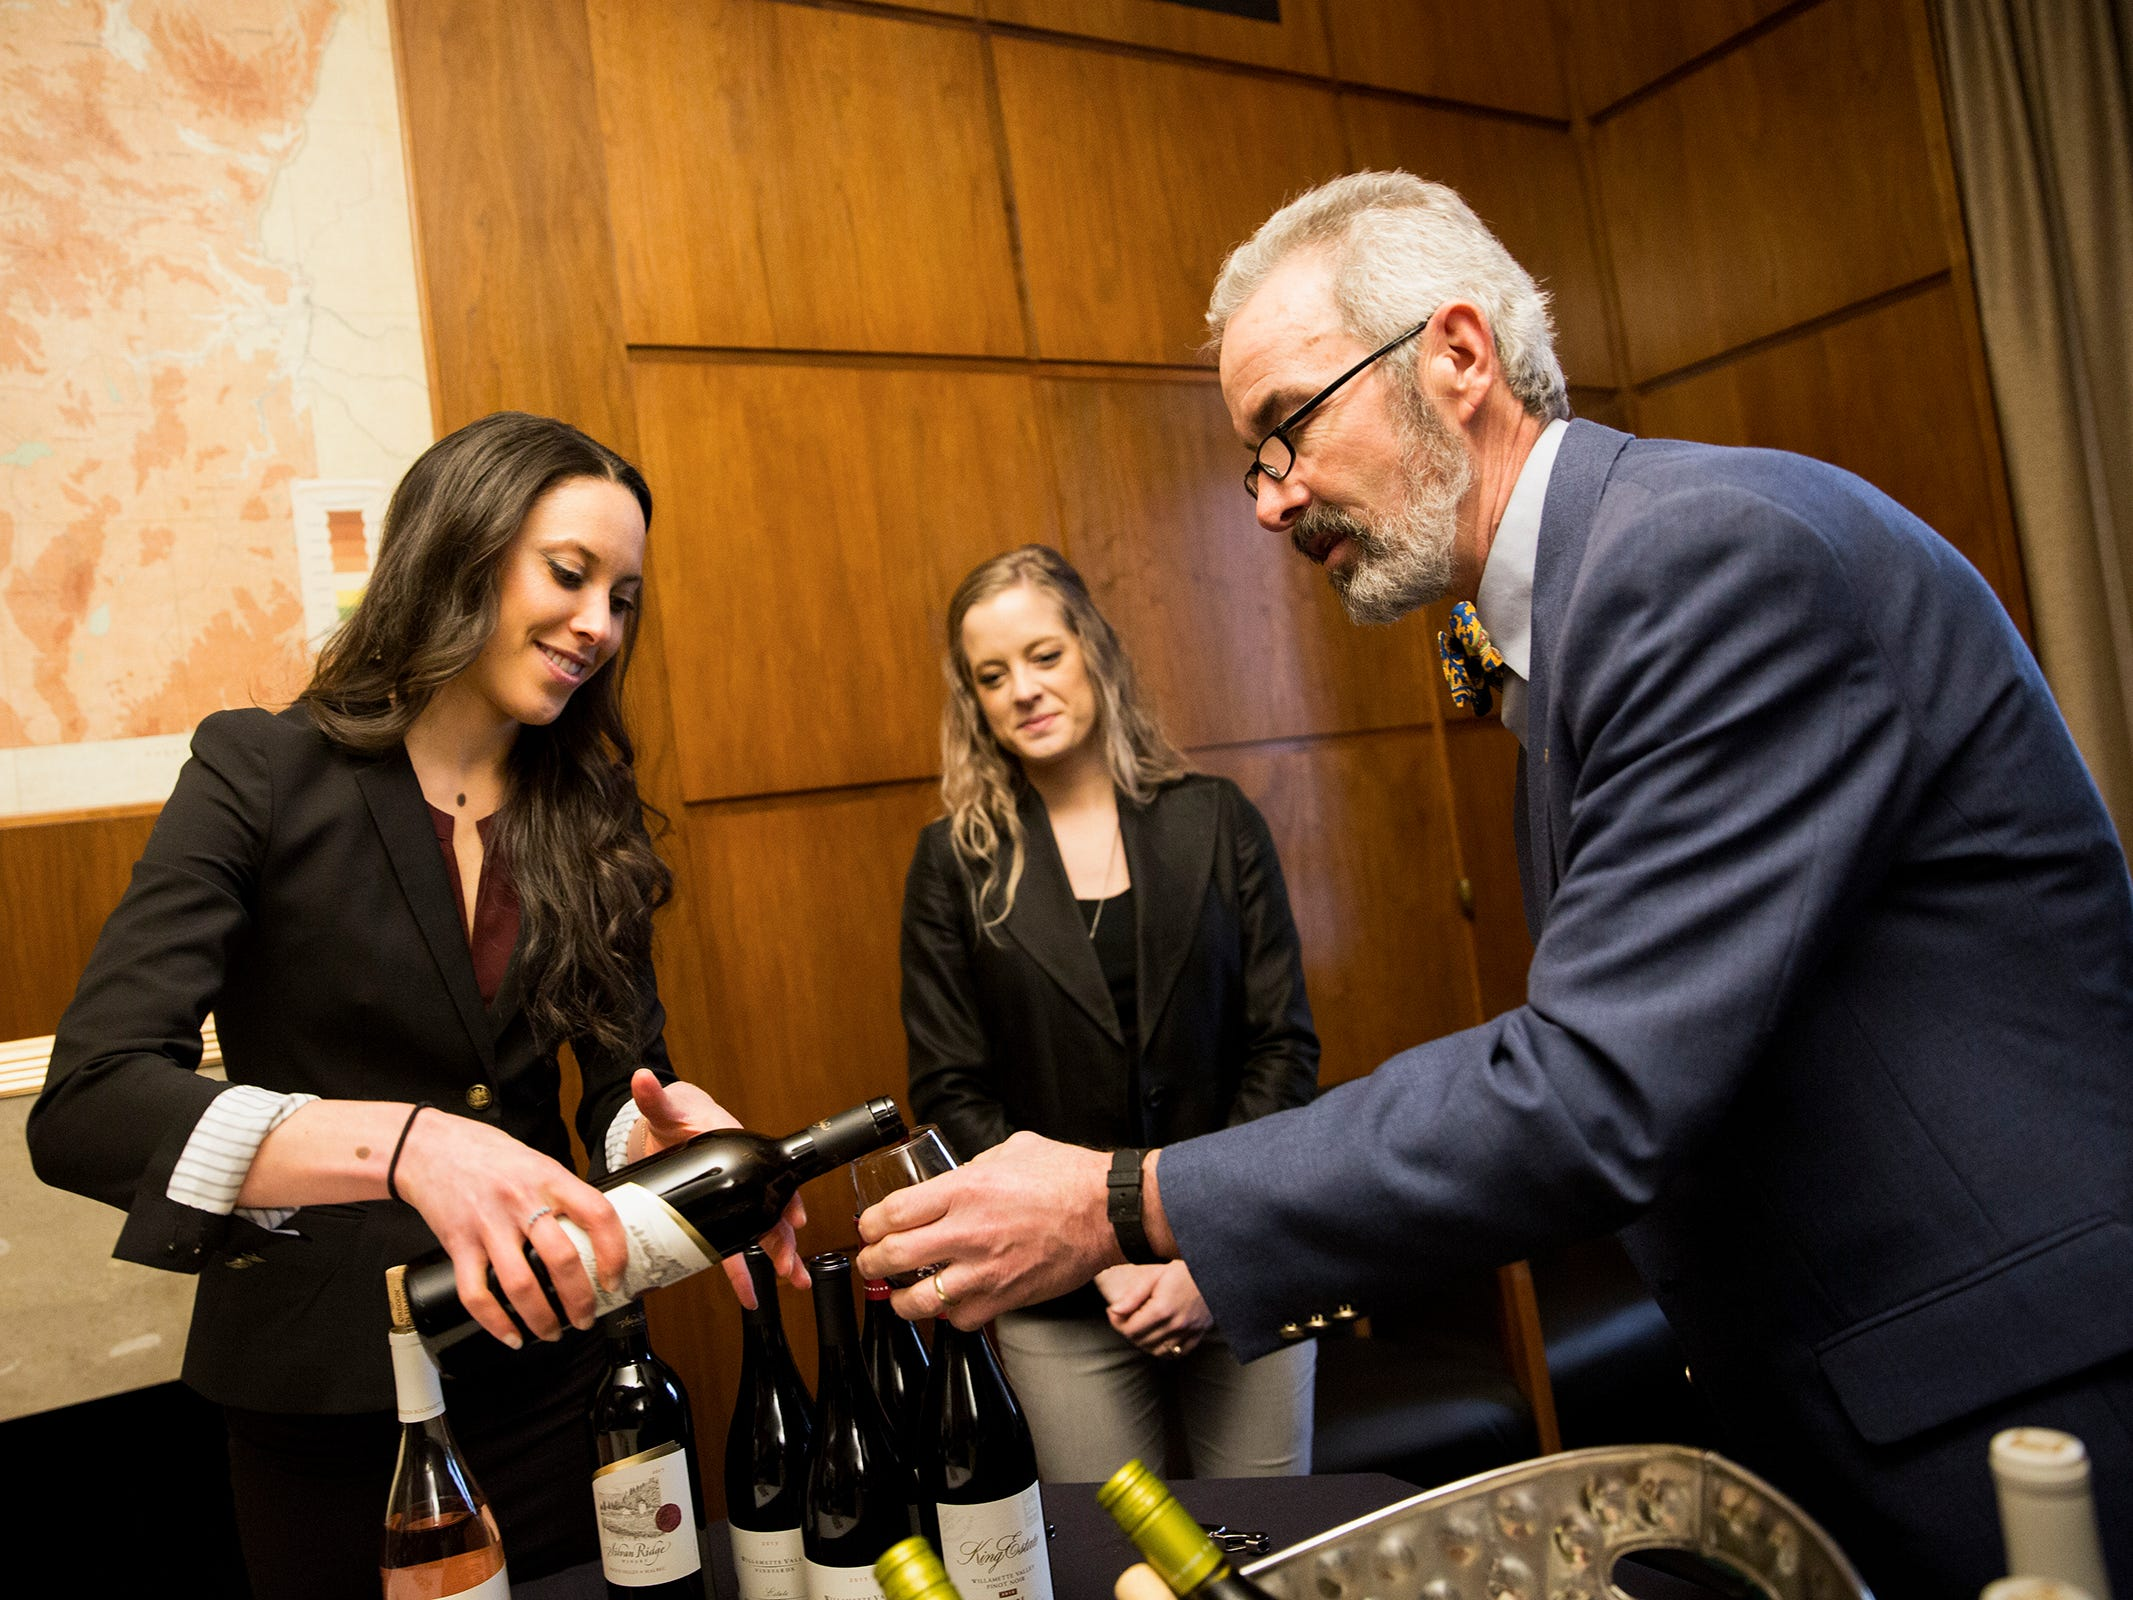 Nicole Krill, Willamette Valley Vineyards Brand Ambassador, pours a glass for Sen. Floyd Prozanski at a release party for the Oregon Solidarity Rose of Pinot Noir in Gov. Kate Brown's ceremonial office at the Oregon State Capitol in Salem on Tuesday, March 5, 2019.